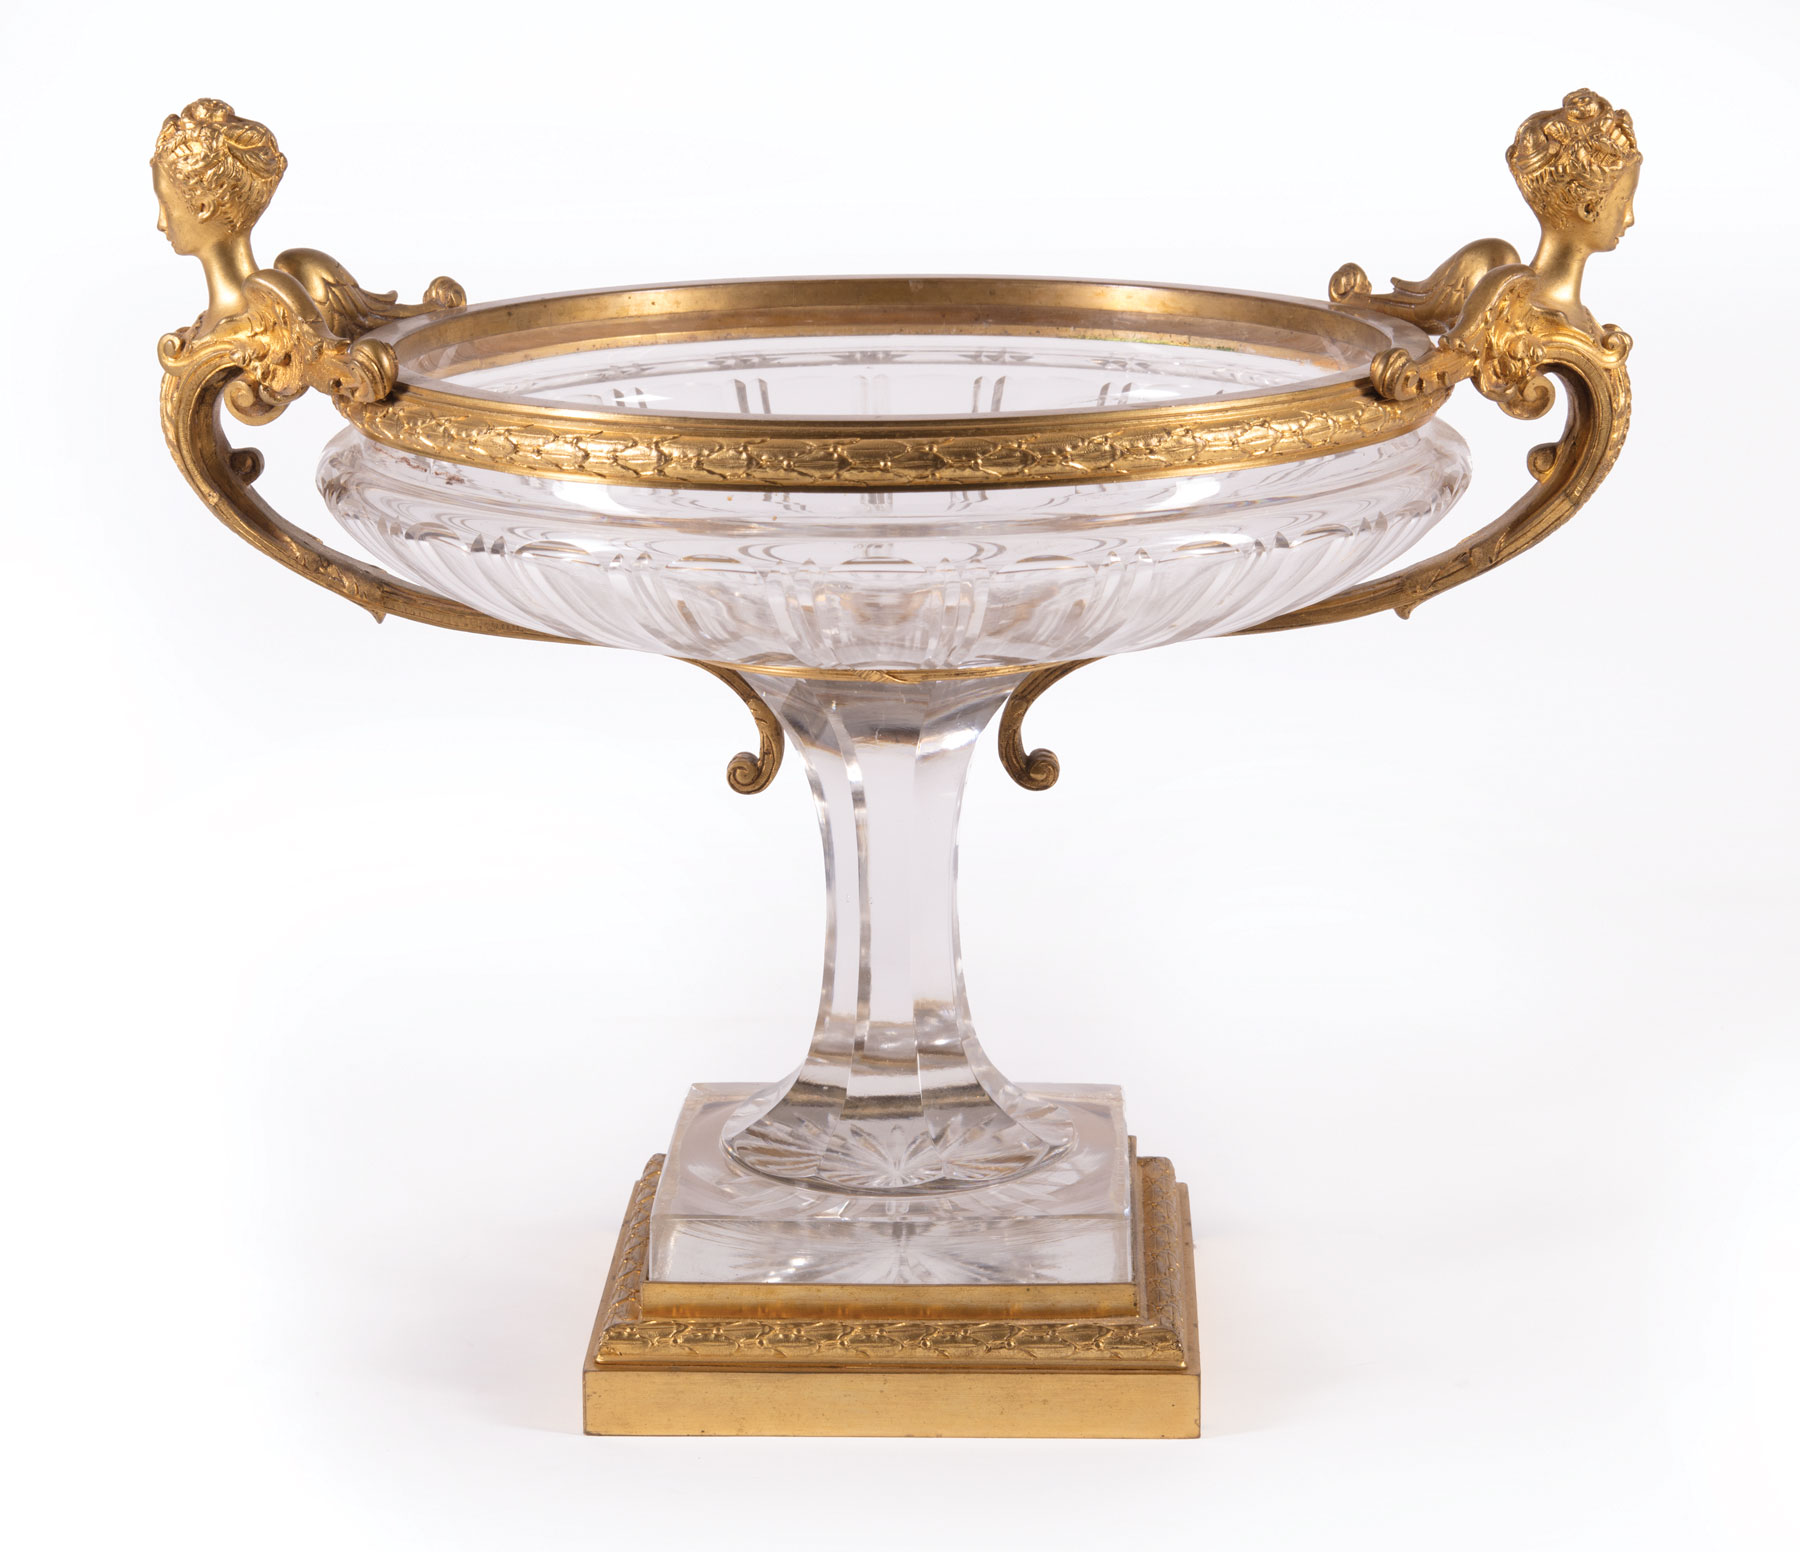 Lot 209 - French Gilt Bronze-Mounted Cut Crystal Center Bowl , late 19th c., probably Baccarat, winged figural